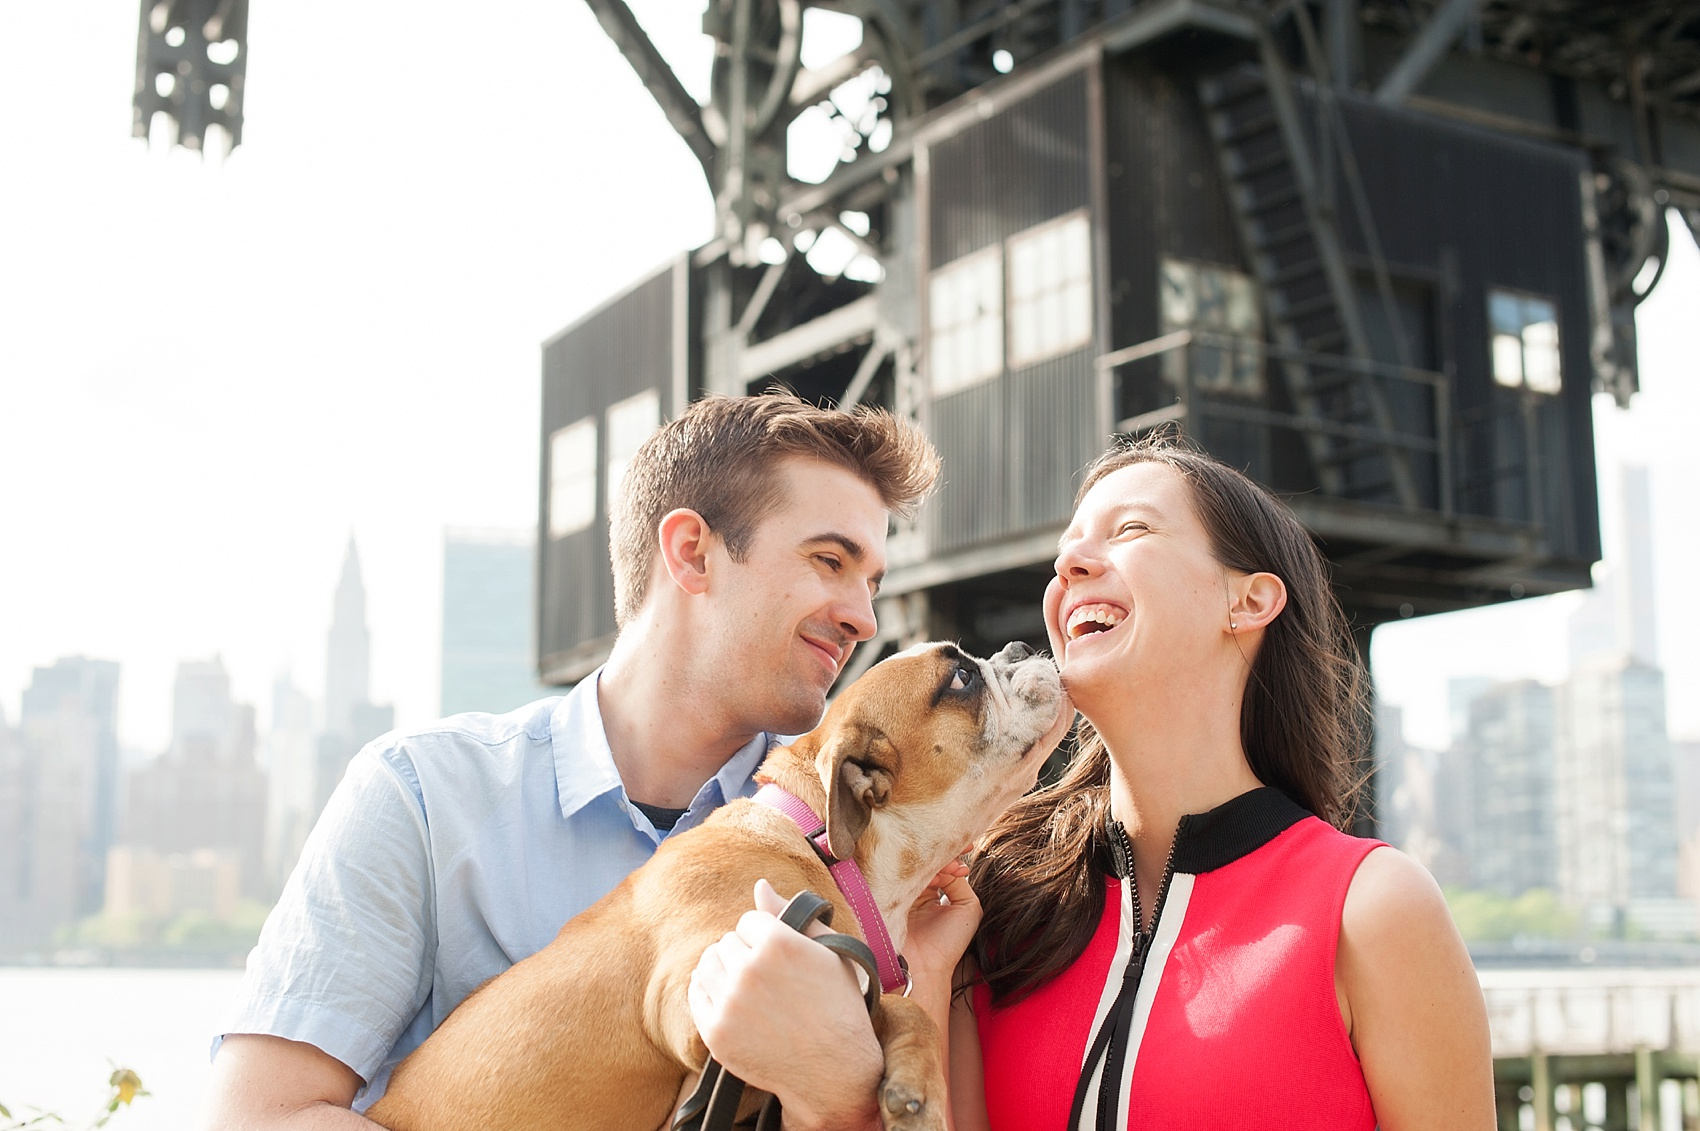 Long Island City waterfront engagement session at Gantry State Park by Mikkel Paige Photography, NYC wedding photographer. Their English Bulldog puppy came along for the photo session!